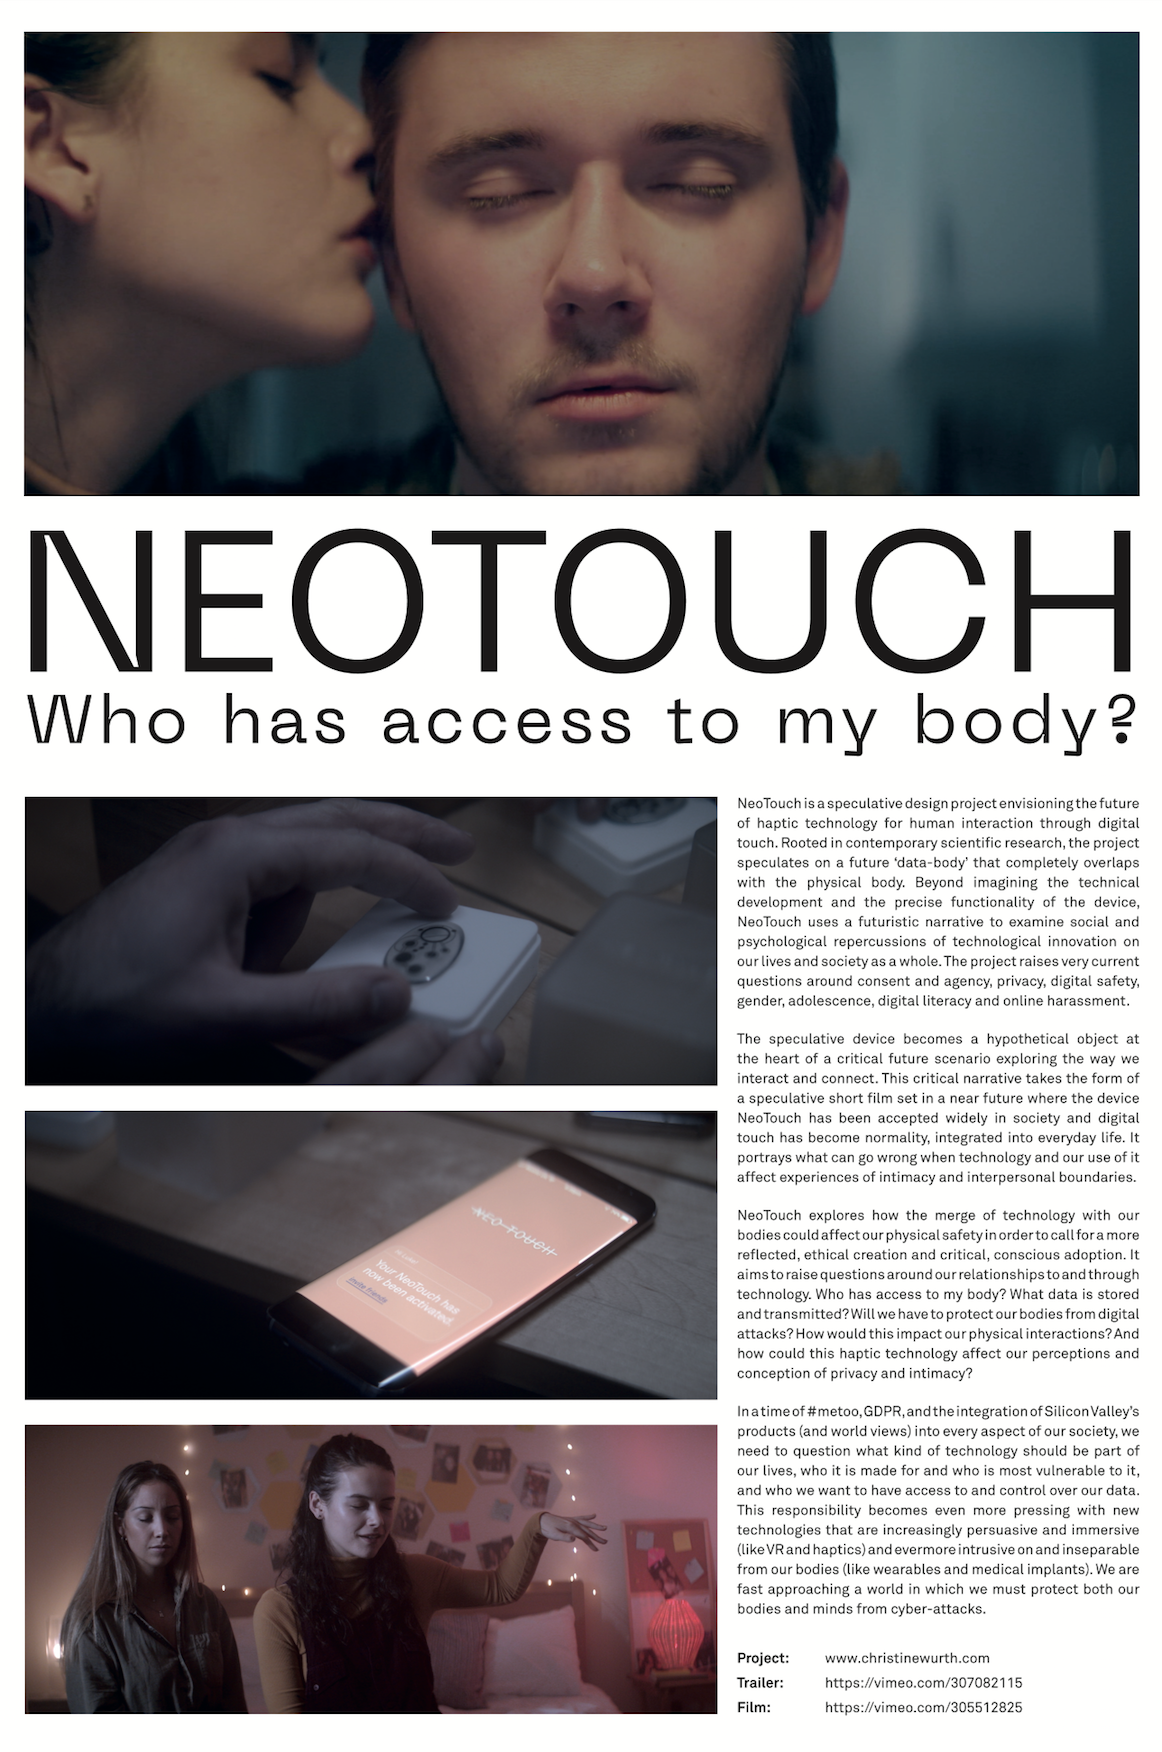 NeoTouch envisioning the future of haptic technology for human interaction through digital touch. Rooted in contemporary scientific research, the project speculates on a future 'data-body' that completely overlaps with the physical body, raising very current questions around consent, privacy, and digital safety. This critical narrative takes the form of a speculative short film set in a near future where the device. NeoTouch has been accepted widely in society and digital touch has become normality, integrated into everyday life. It portrays what can go wrong when technology and our use of it affect experiences of intimacy and interpersonal boundaries.